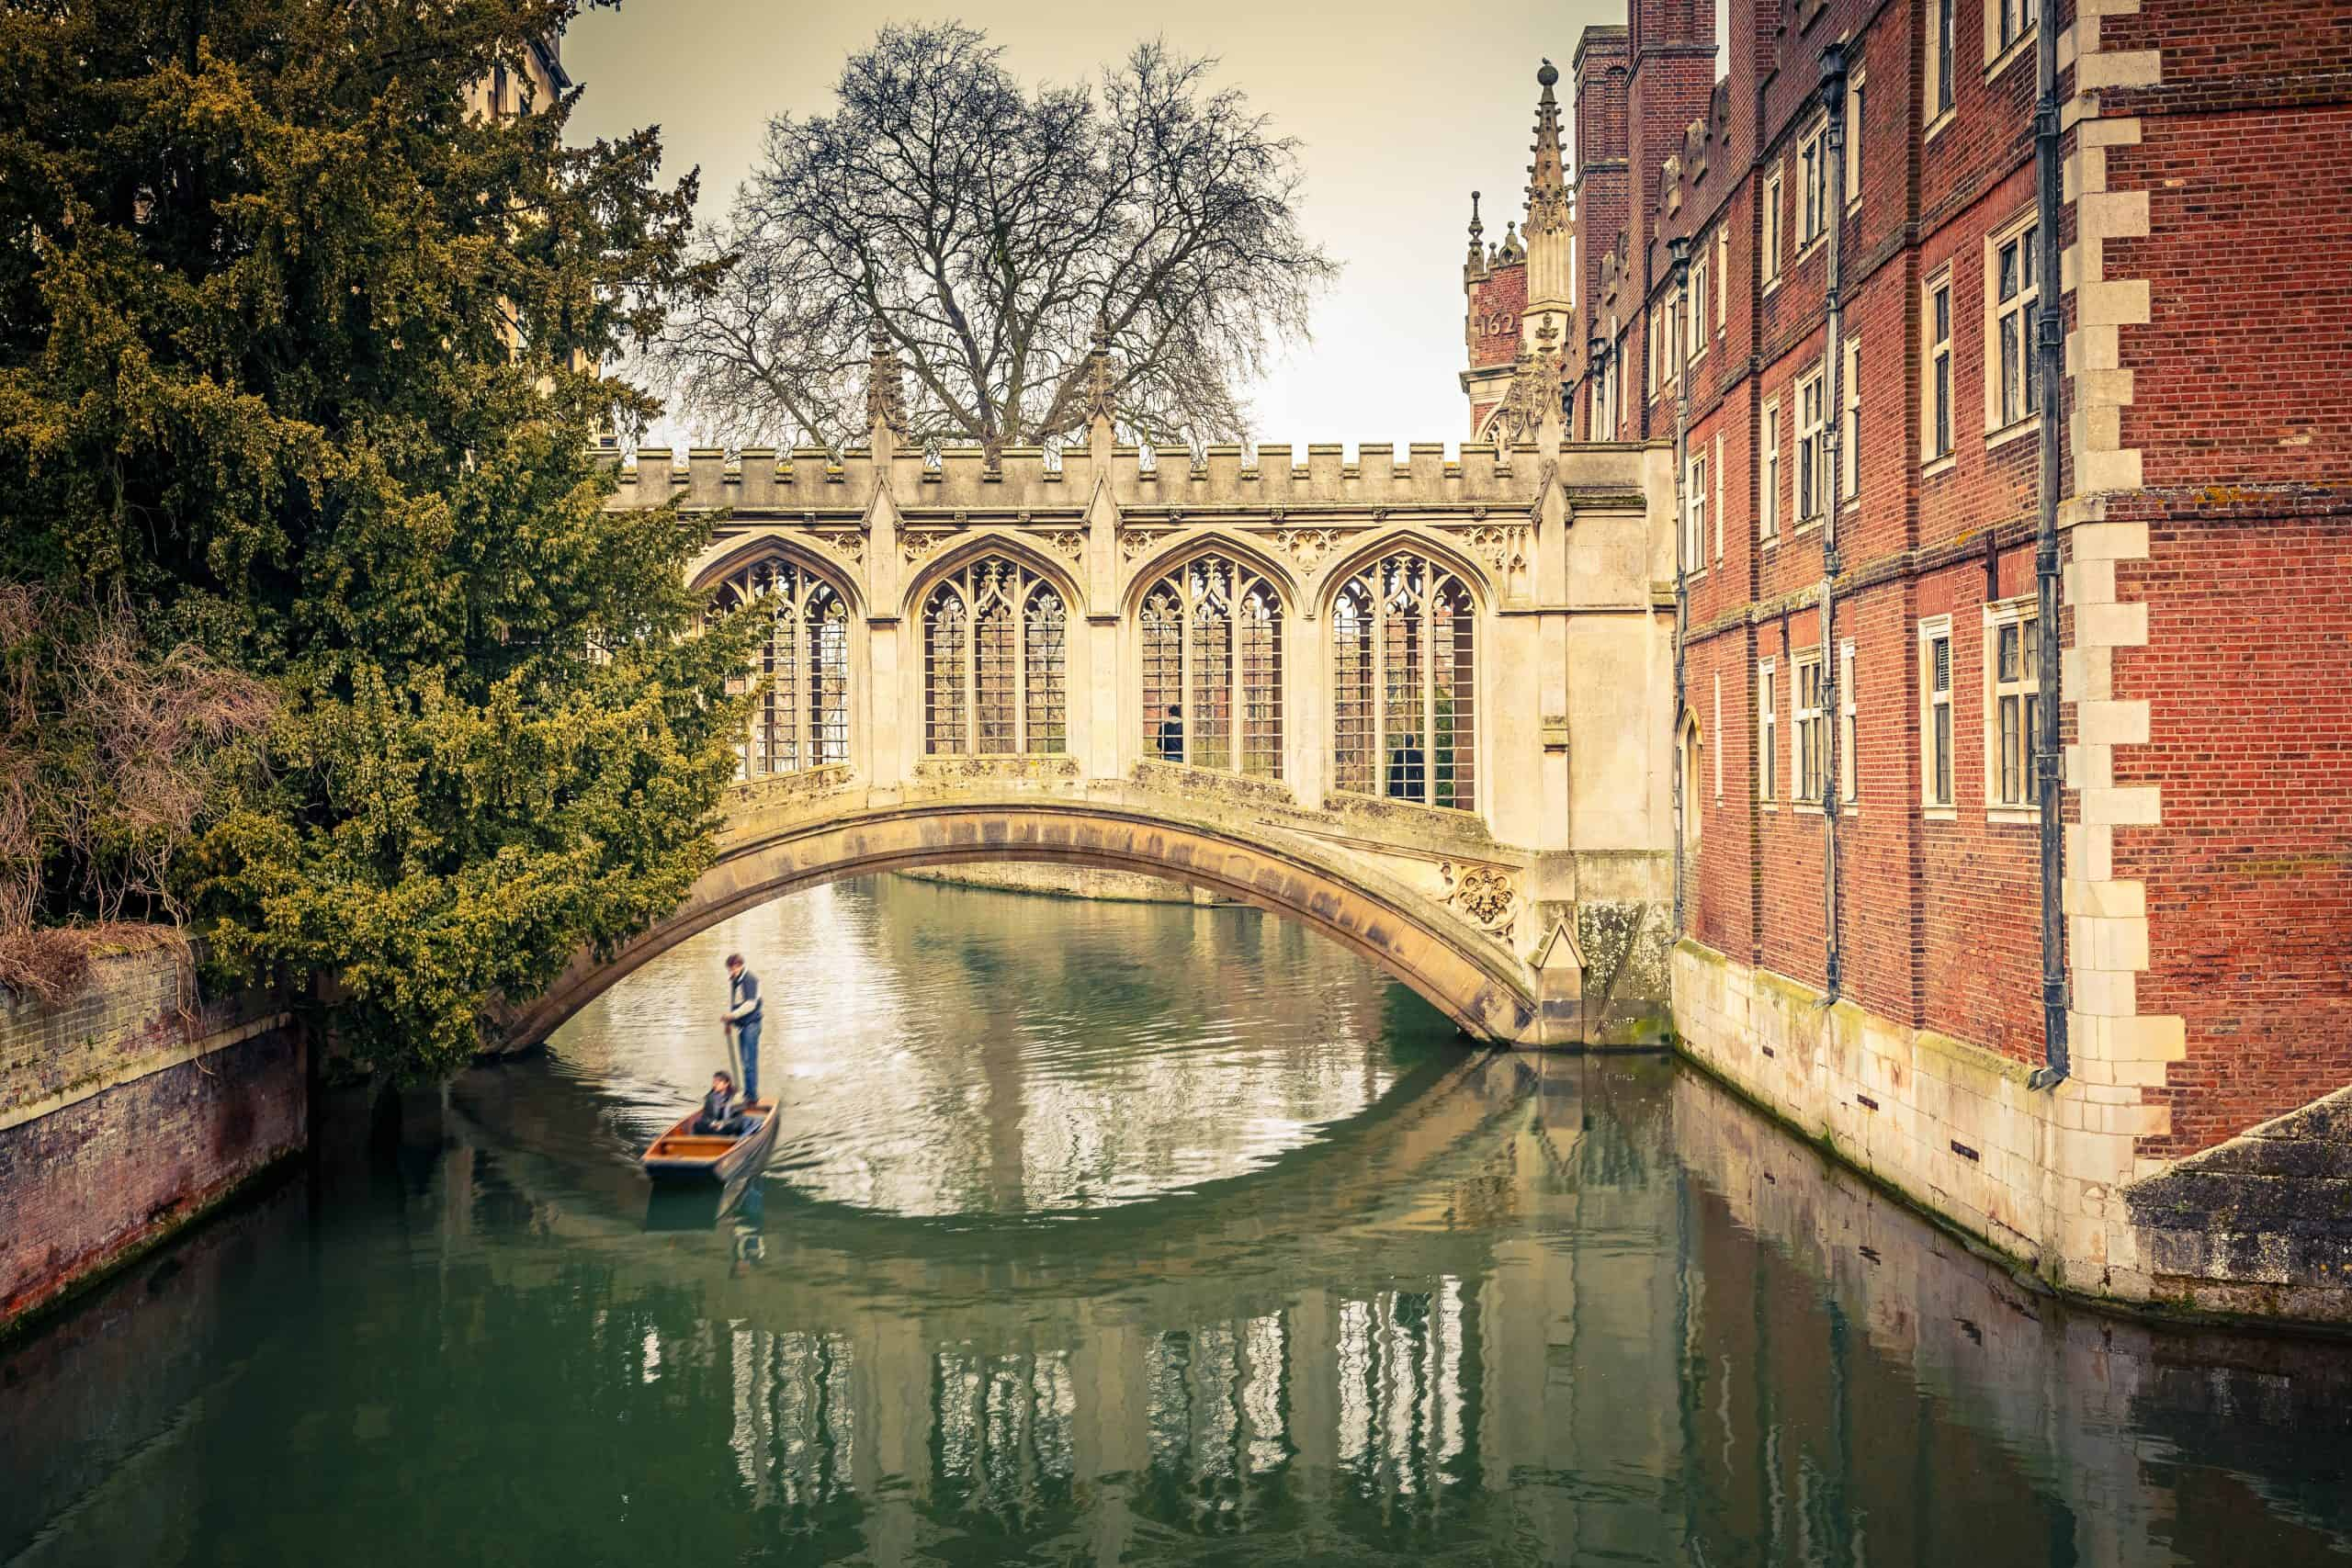 The Bridge of Sigh, Cambridge